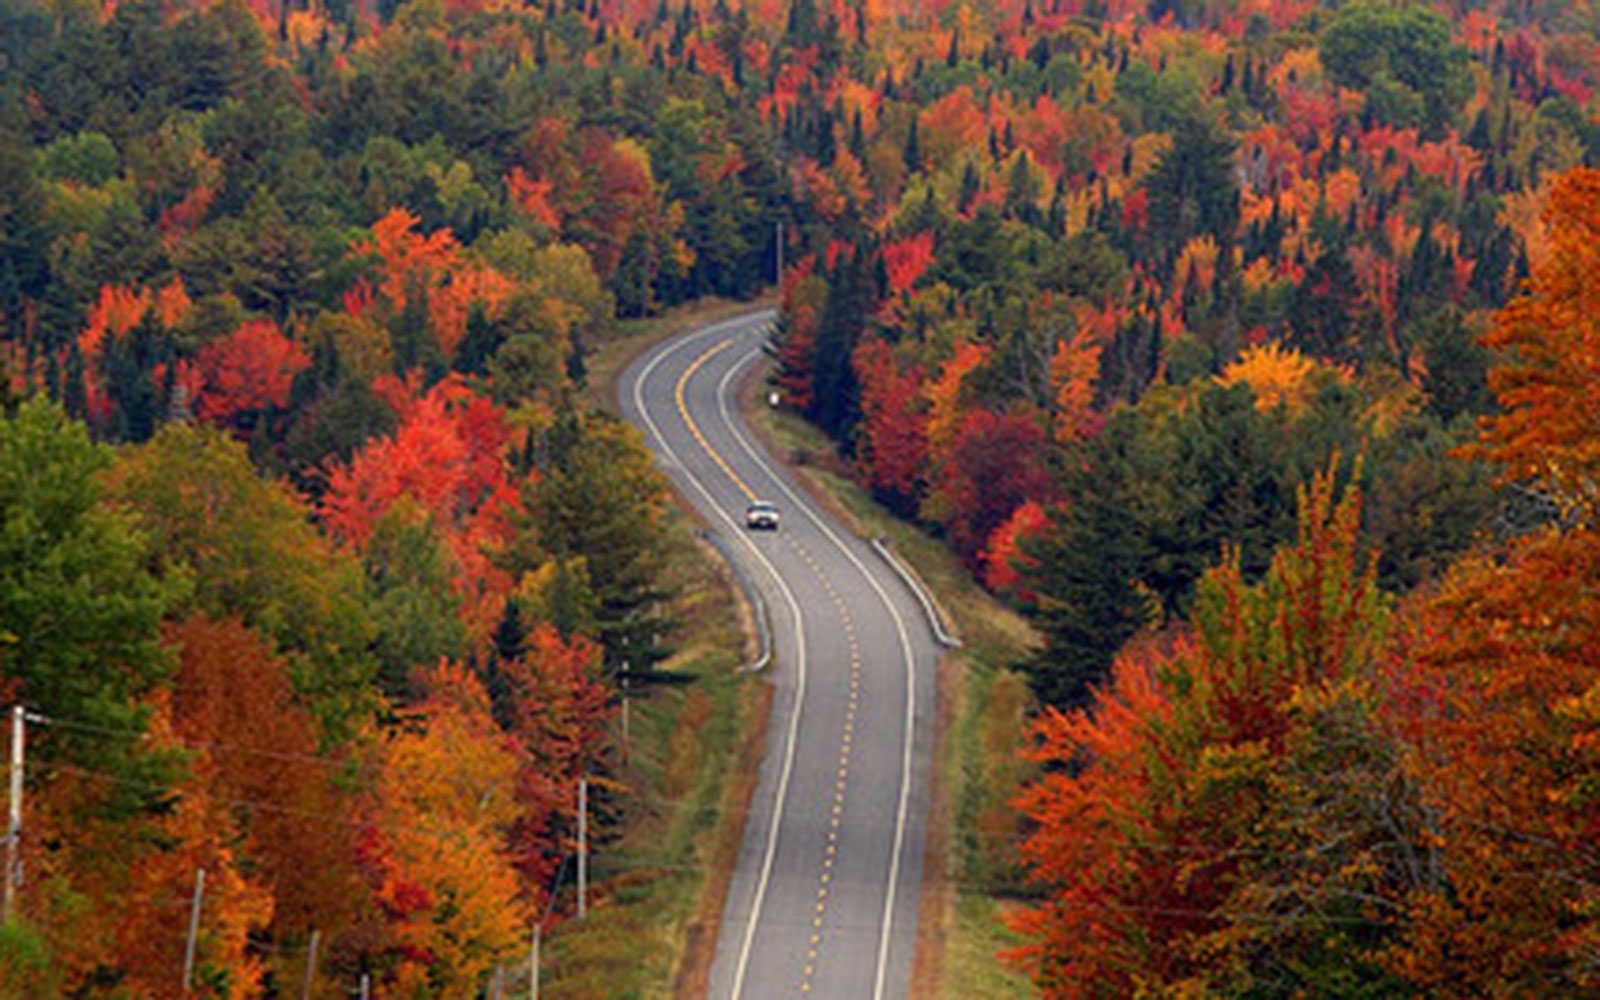 best places to see fall foliage, best fall colors in usa, fall scenery, best fall foliage, best places to see fall colors in usa, best places for fall foliage, best fall colors, best fall foliage in usa, best place for fall colors, best places to see leaves change, places to see fall foliage, best place to see fall colors, best autumn colors in usa, best place to enjoy fall colors in us, best fall leaf viewing, where to go to see fall colors, fall leave, best places to see fall foliage in usa, best places to see fall foliage in the us, best places to view fall foliage, best fall season in usa, pretty fall colors, pretty fall leaves, best cities to see fall foliage, best autumn leaves, best autumn colors, best foliage in us, where is the best fall foliage, where to see fall colors, beautiful fall scenery, most beautiful fall leaves, fall colors usa, best foliage in usa, best fall foliage trips usa, fall sightseeing, fall places near me, fall scenery near me, best fall colors in us, places to go in autumn, places to visit for fall colors, beautiful autumn colors, fall leaves trip, pretty fall, beautiful autumn leaves, best fall colors in east coast, places to see fall colors near me, best states to see fall colors, autumn in usa, good fall colors, best place to see fall leaves, best places to see autumn leaves, fall foliage end of september, where to go for fall colors, where to see fall foliage, best foliage, september fall leaves, beautiful fall colors, fall foliage vacations, places to see fall colors, best places to visit for fall foliage, november foliage, most beautiful fall trees, in the leaves, famous fall pictures, best states for fall foliage, best fall foliage vacations, pretty fall scenery, best fall leaves, best place for fall colors in usa, best fall foliage in east coast usa, best places in the world to see fall foliage, september fall colors, best cities for fall foliage, eastern us fall colors, best places in the us for fall foliage, beautiful fall trees, prettiest states in the fall, pictures of fall trees, october scenery pictures, best place to live for fall weather, best autumn trees, people in the fall, places to visit in fall in usa, autumn trees, east coast autumn, best time to see leaves change, fall foliage early november, november fall images, fall leaves scenery, pretty autumn leaves, november fall foliage, colorful fall foliage, best place to see leaves changing color, bright fall pictures, autumn leaves scenery, beautiful fall foliage, autumn leaves east coast, beautiful fall leaves, fall autumn colors, fall tree colors 2017 , beautiful fall, fall foliage images, most beautiful fall foliage in the world, beautiful foliage, what are fall colors, places to see, best fall colors in the world, fall pictures, fall images, fall backgrounds, fall photos, fall pic, fall wallpaper, fall scenes, beautiful fall pictures, autumn pictures, cute fall pictures, fall pictures wallpaper, autumn images, fall images free, free fall pictures, pretty fall pictures, pictures of fall leaves, fall pictures for desktop, fall desktop backgrounds, beautiful fall images, fall pics wallpaper, fall season pictures, fall scenery pictures, autumn photos, fall season images, fall scenes images, fall background images, autumn pics, fall themed pictures, beautiful fall photos, autumn desktop wallpaper free, pretty fall backgrounds, fall nature pictures, free fall photos,     beautiful pictures of autumn season, fall stock photos, autumn pictures wallpaper, fall time pictures, fall scenes wallpaper, free fall backgrounds, happy fall images, fall photographs, fall images free wallpaper, printable fall scenes, fall scenery images, fall landscape photos free, pics of fall leaves, fall nature wallpaper, free fall wallpaper, fall photography, fall background pictures, welcome fall images, high resolution fall images, pics of fall scenes, fall photos for desktop background, free fall scenery pictures, late fall backgrounds, autumn pictures for wallpaper, autumn scene, fall trees images, free autumn images, fall pictures for wallpaper free, free fall pics, fall season pictures photos, fall scene pictures, fall roads pictures, fall tree pictures free, google images fall scenes, fall leaves desktop wallpaper free, free pictures of autumn scenes, fall tree background images, free fall photography, fall winter images, fall themed photos, fall trees background wallpaper, free fall photos wallpaper, fall pics 2017, free pictures of fall scenery, fall themed wallpaper, beautiful autumn pictures, autumn images free, pictures of fall and winter, fall wallpaper images, fall colors wallpaper, fall day pictures, fall landscape pictures, autumn nature pictures, fall backgrounds for pictures, free fall pictures to copy, fall trees wallpaper, free images of fall, fall season photos, autumn background images, fall hd photos, fall autumn pictures free, pretty autumn pictures, free fall desktop wallpaper, fall desktop, autumn desktop background, fall drive, fall road trips midwest, best fall drives, scenic road trips midwest, midwest scenery, fall foliage drives in ohio, wisconsin fall drives, best fall foliage drives in indiana, apostle islands fall colors